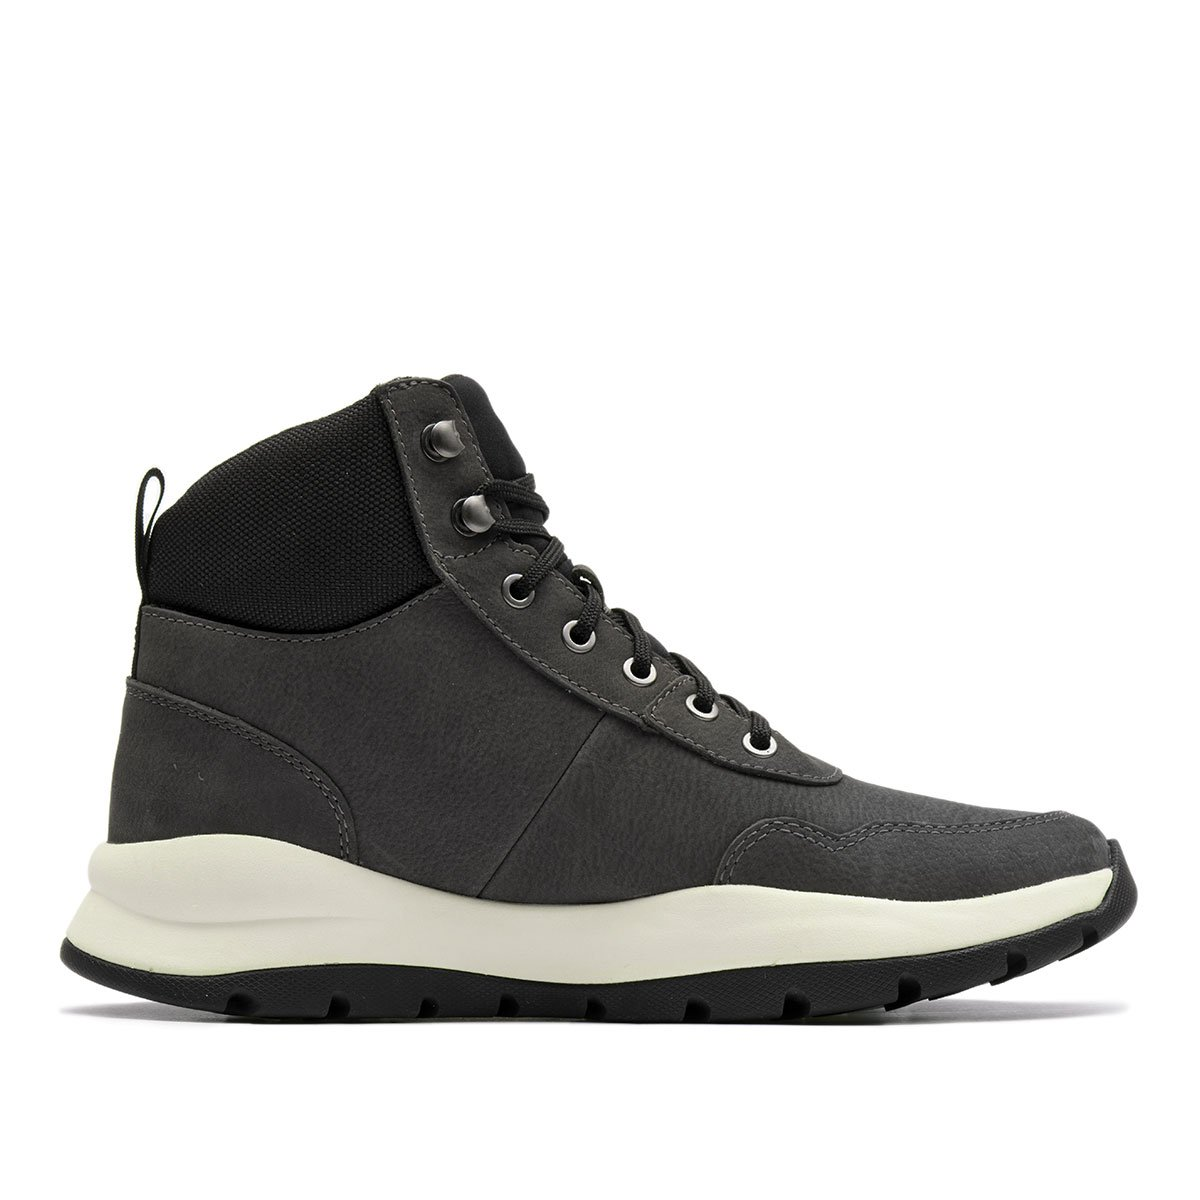 Timberland Boroughs Project Sneaker Boot